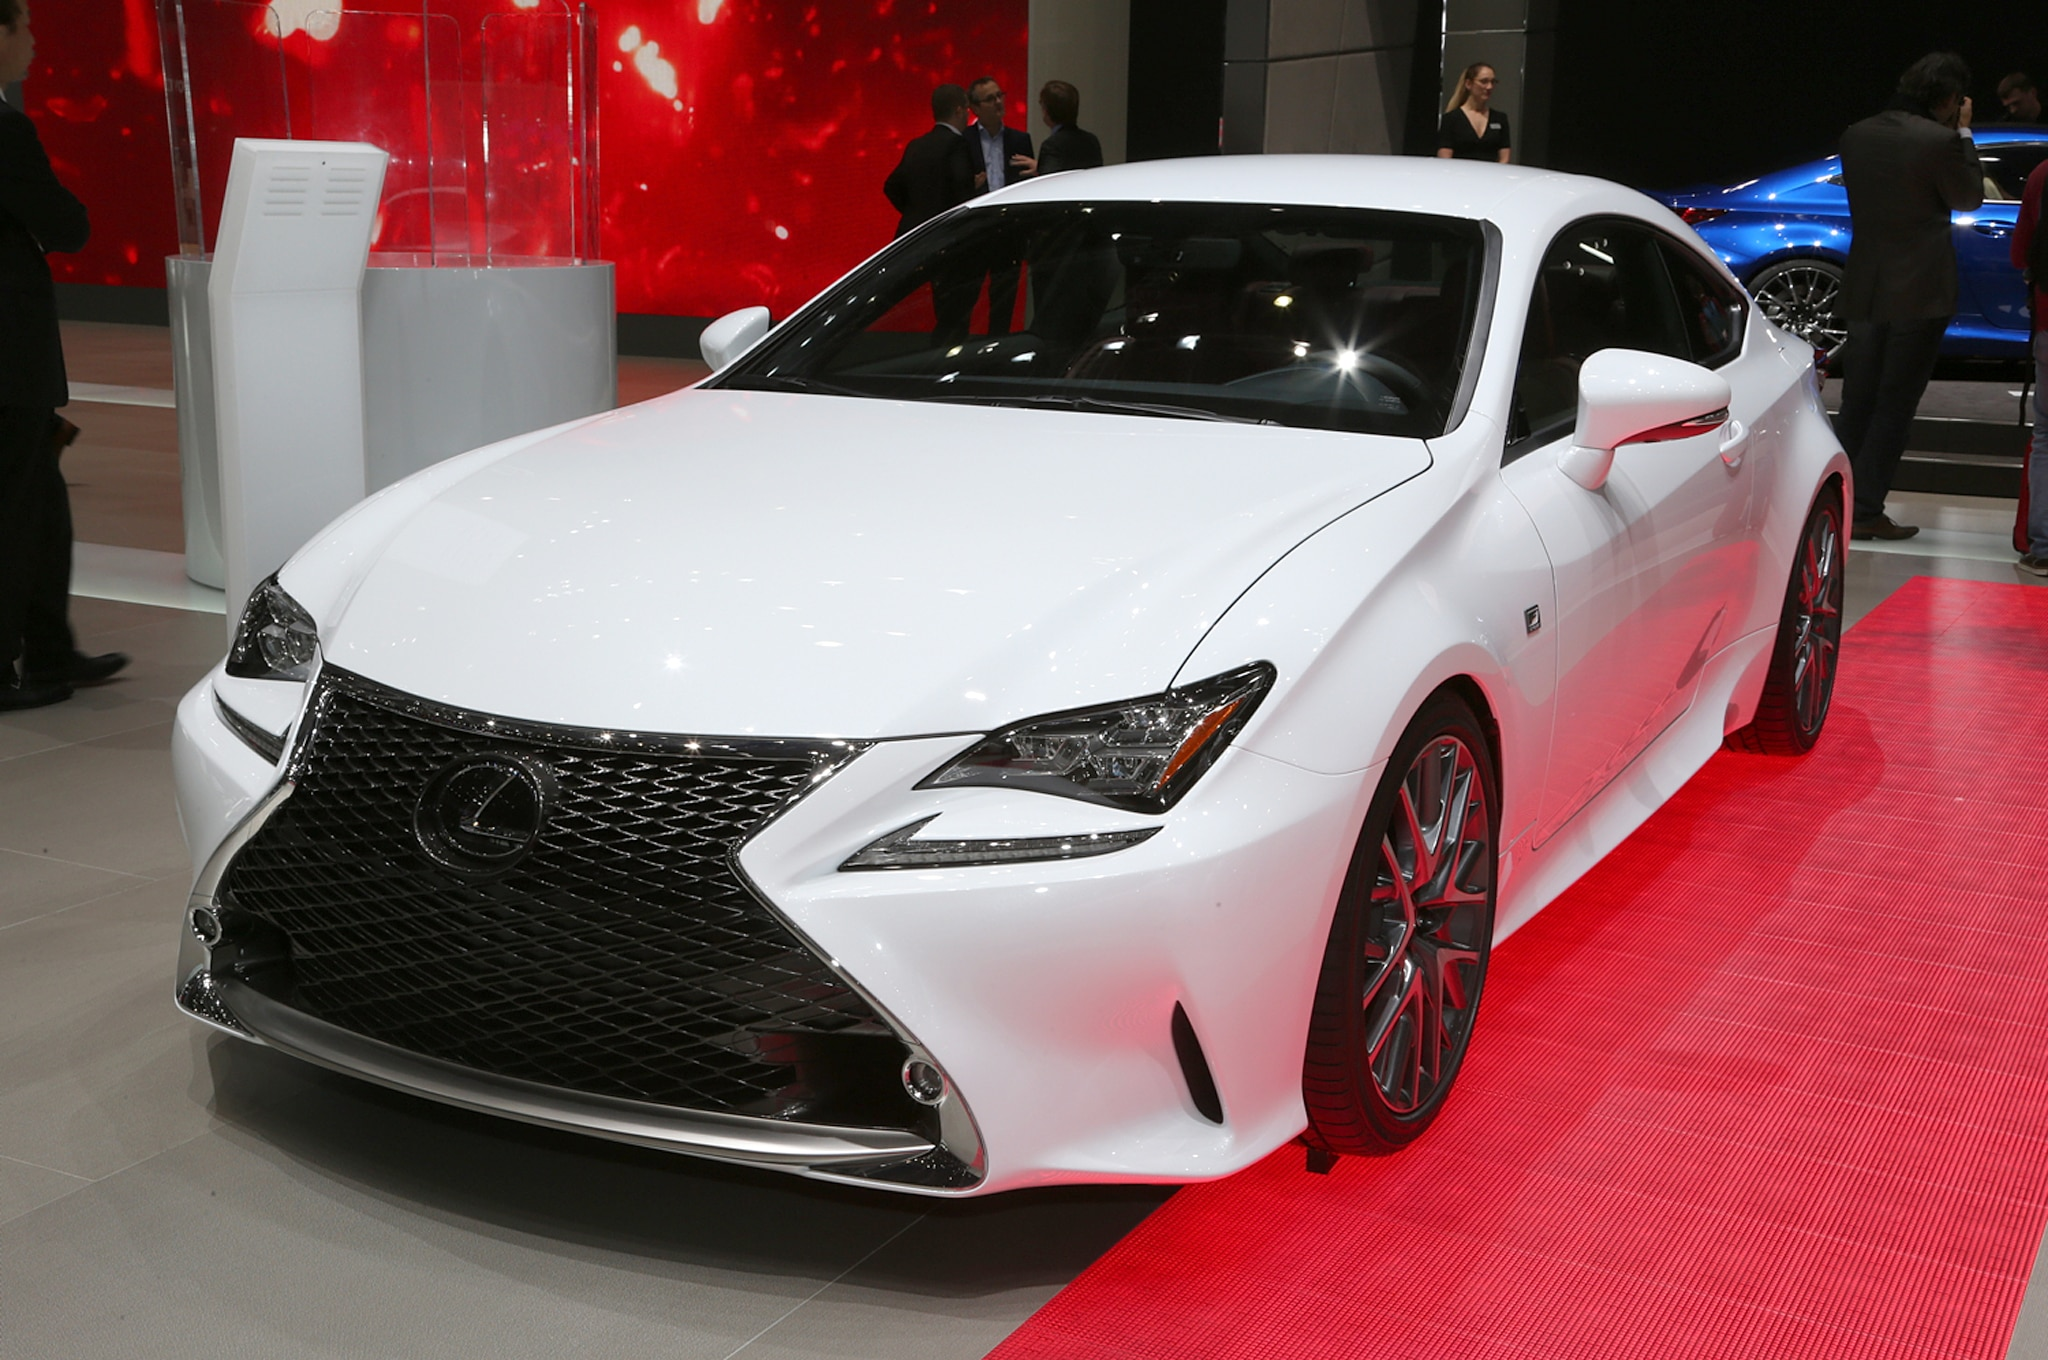 2015 lexus rc350 f sport rc f race car debut in geneva automobile. Black Bedroom Furniture Sets. Home Design Ideas